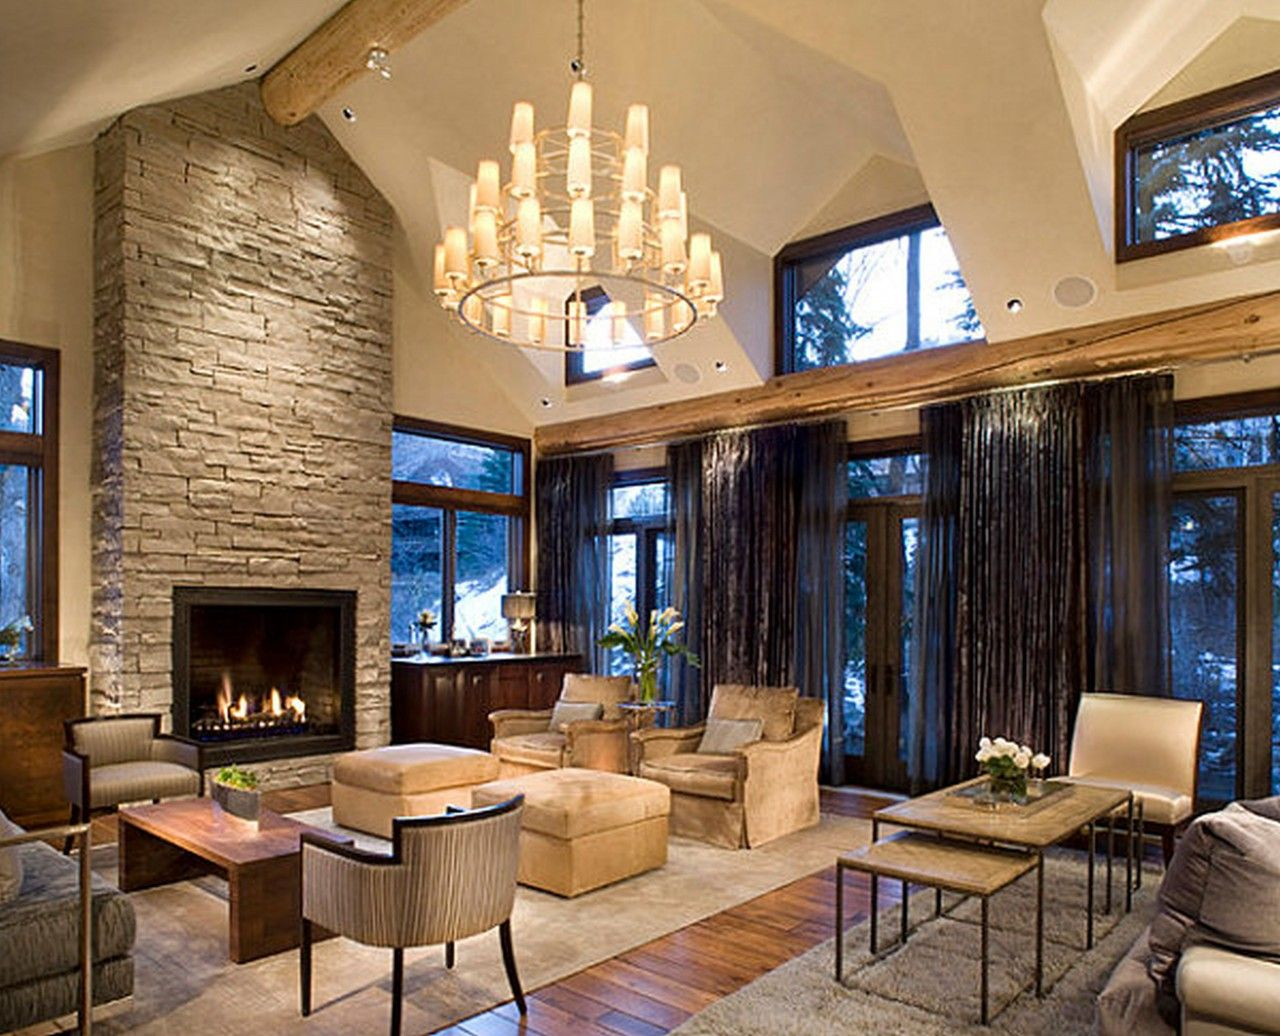 Window ideas for family room  exquisite family room design with stone around fireplace and unique